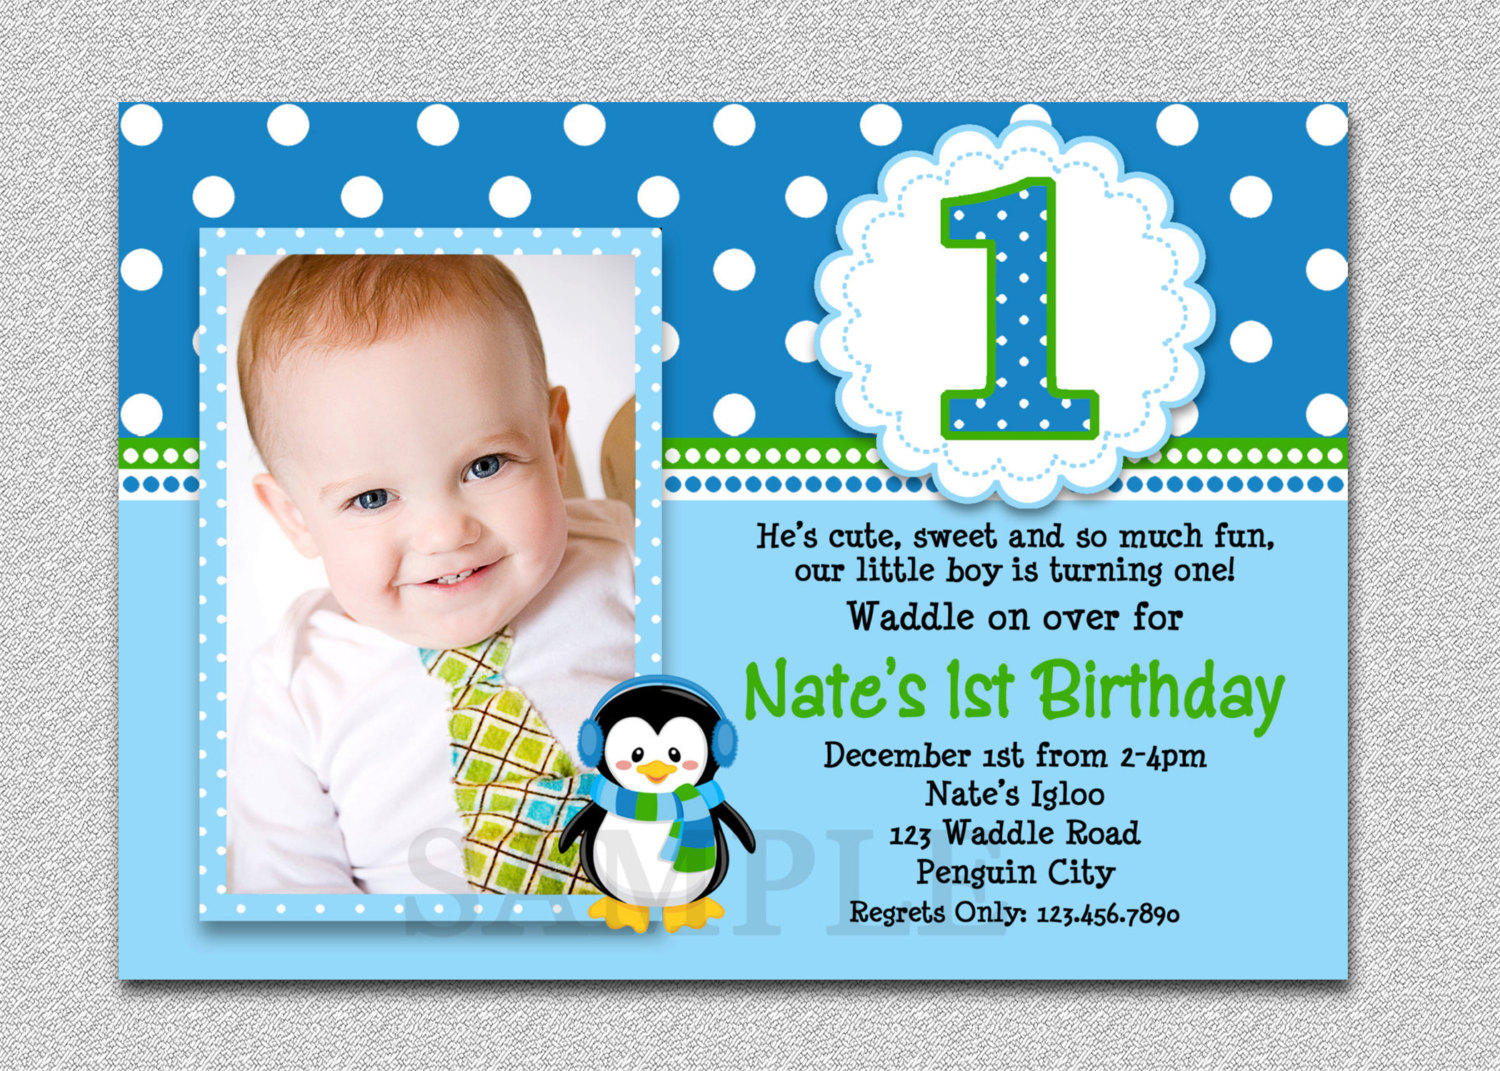 1st birthday invitations templates with photo ; 1St-Birthday-Invitations-Boy-will-help-you-to-create-your-own-Birthday-invitation-3